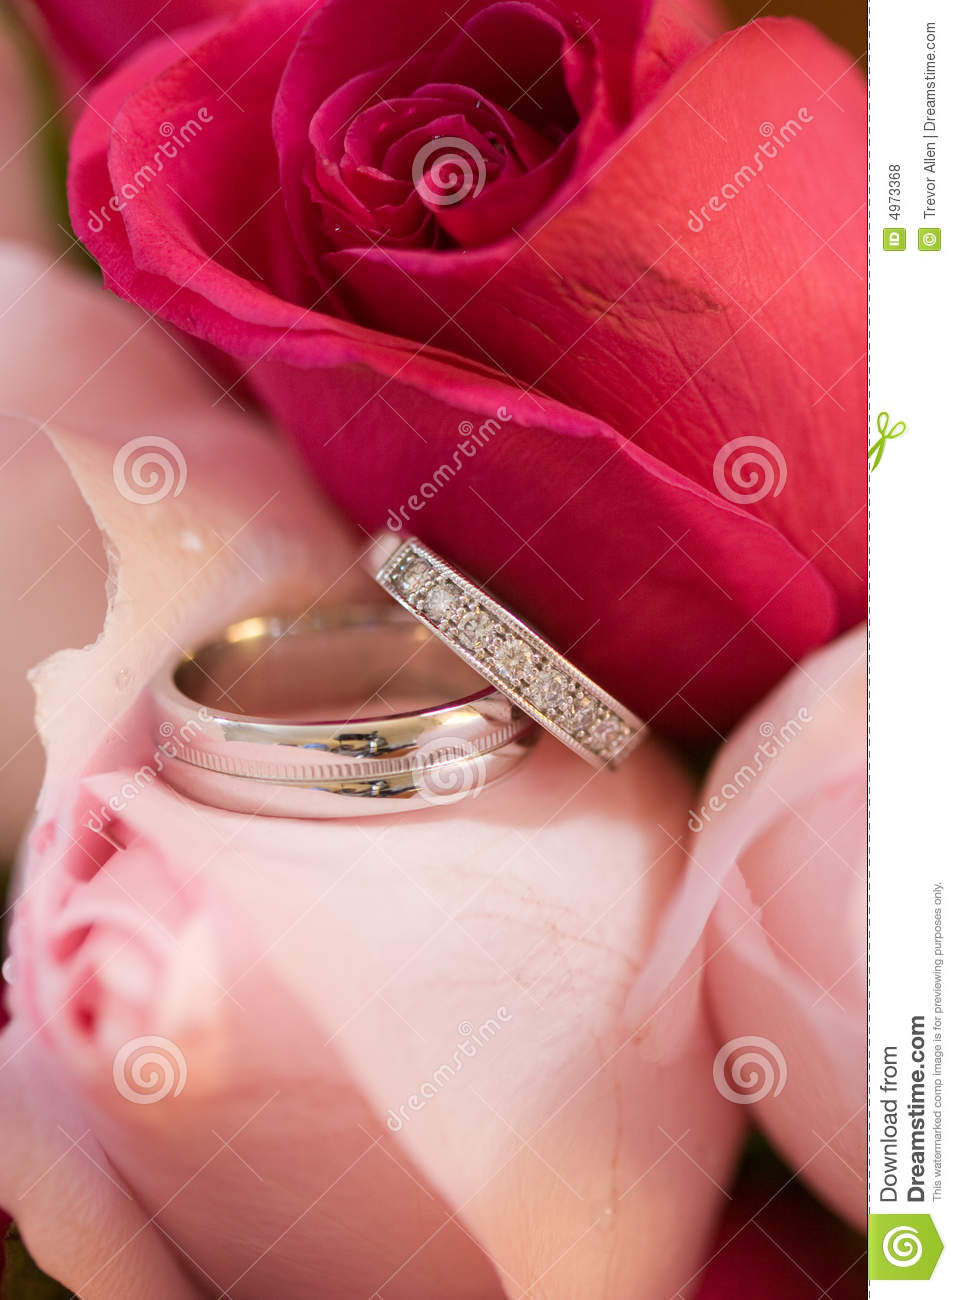 Wedding Rings in Roses